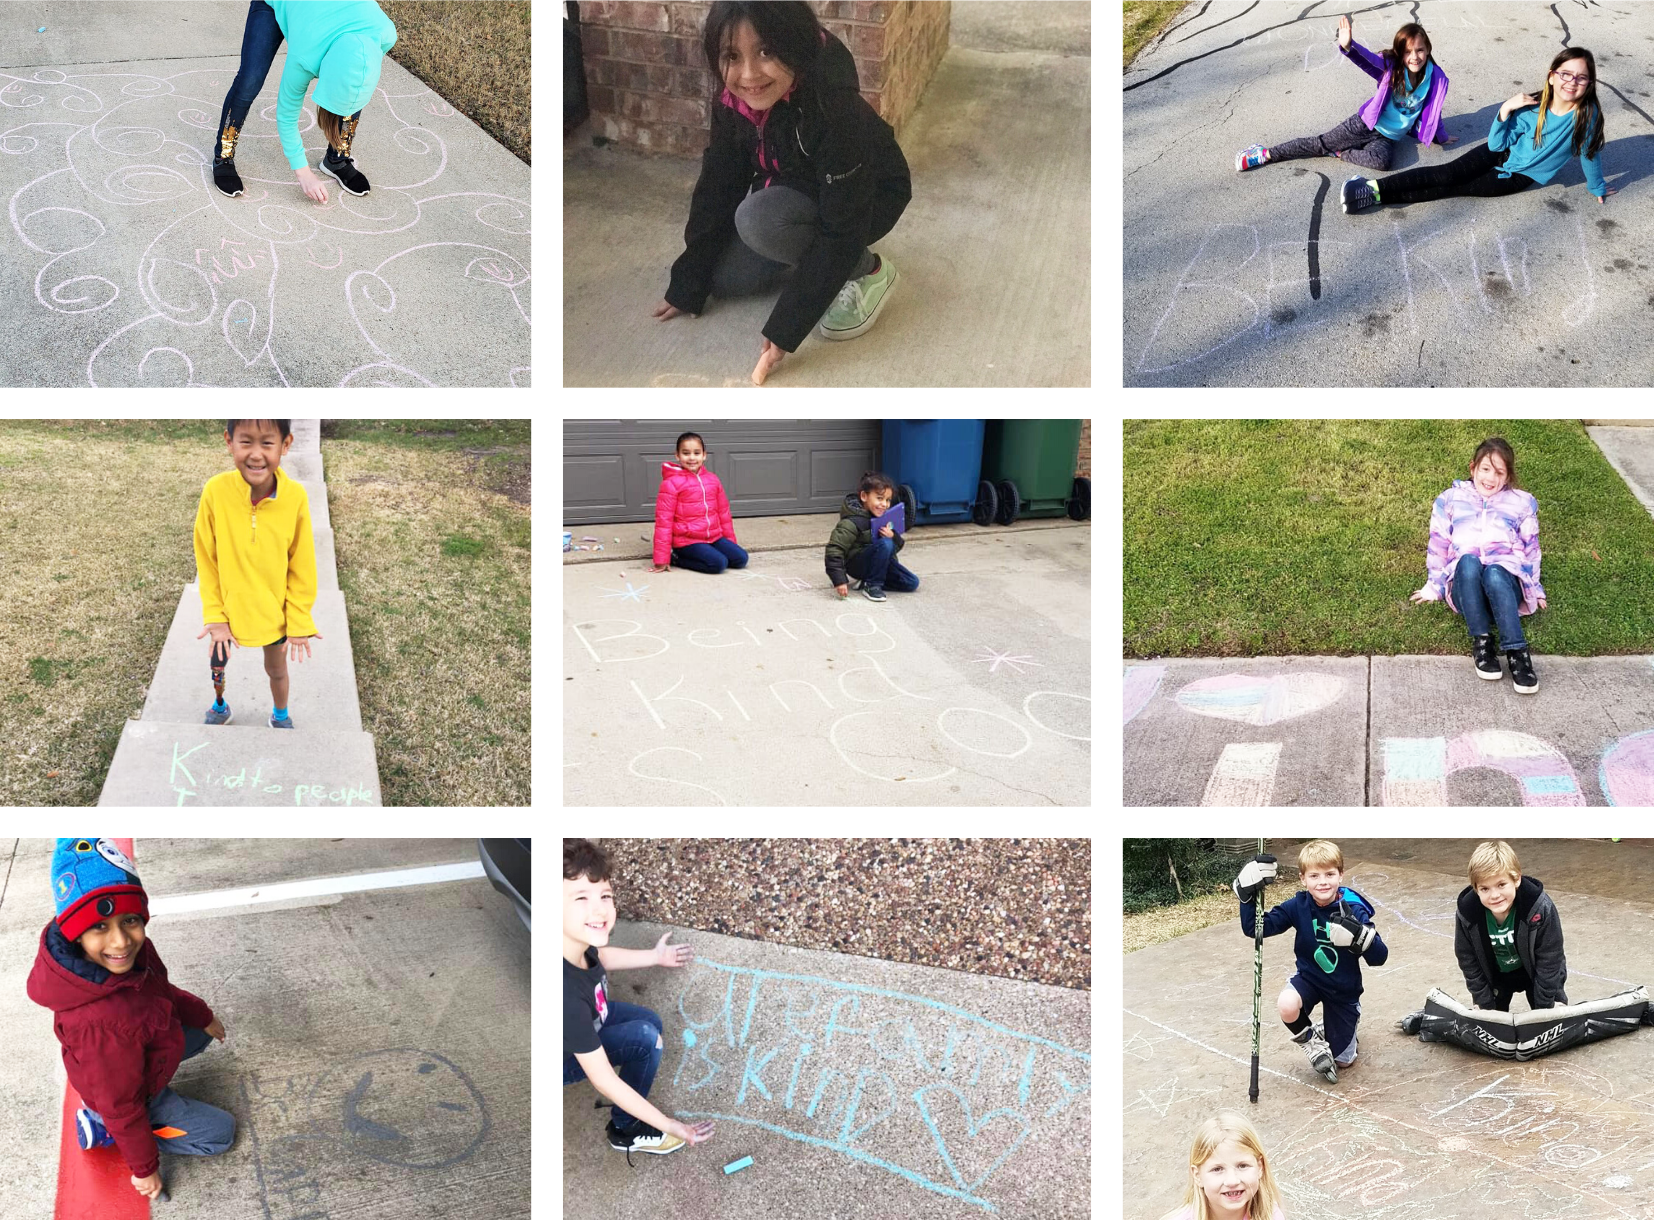 Students smile with their sidewalk chalk creations